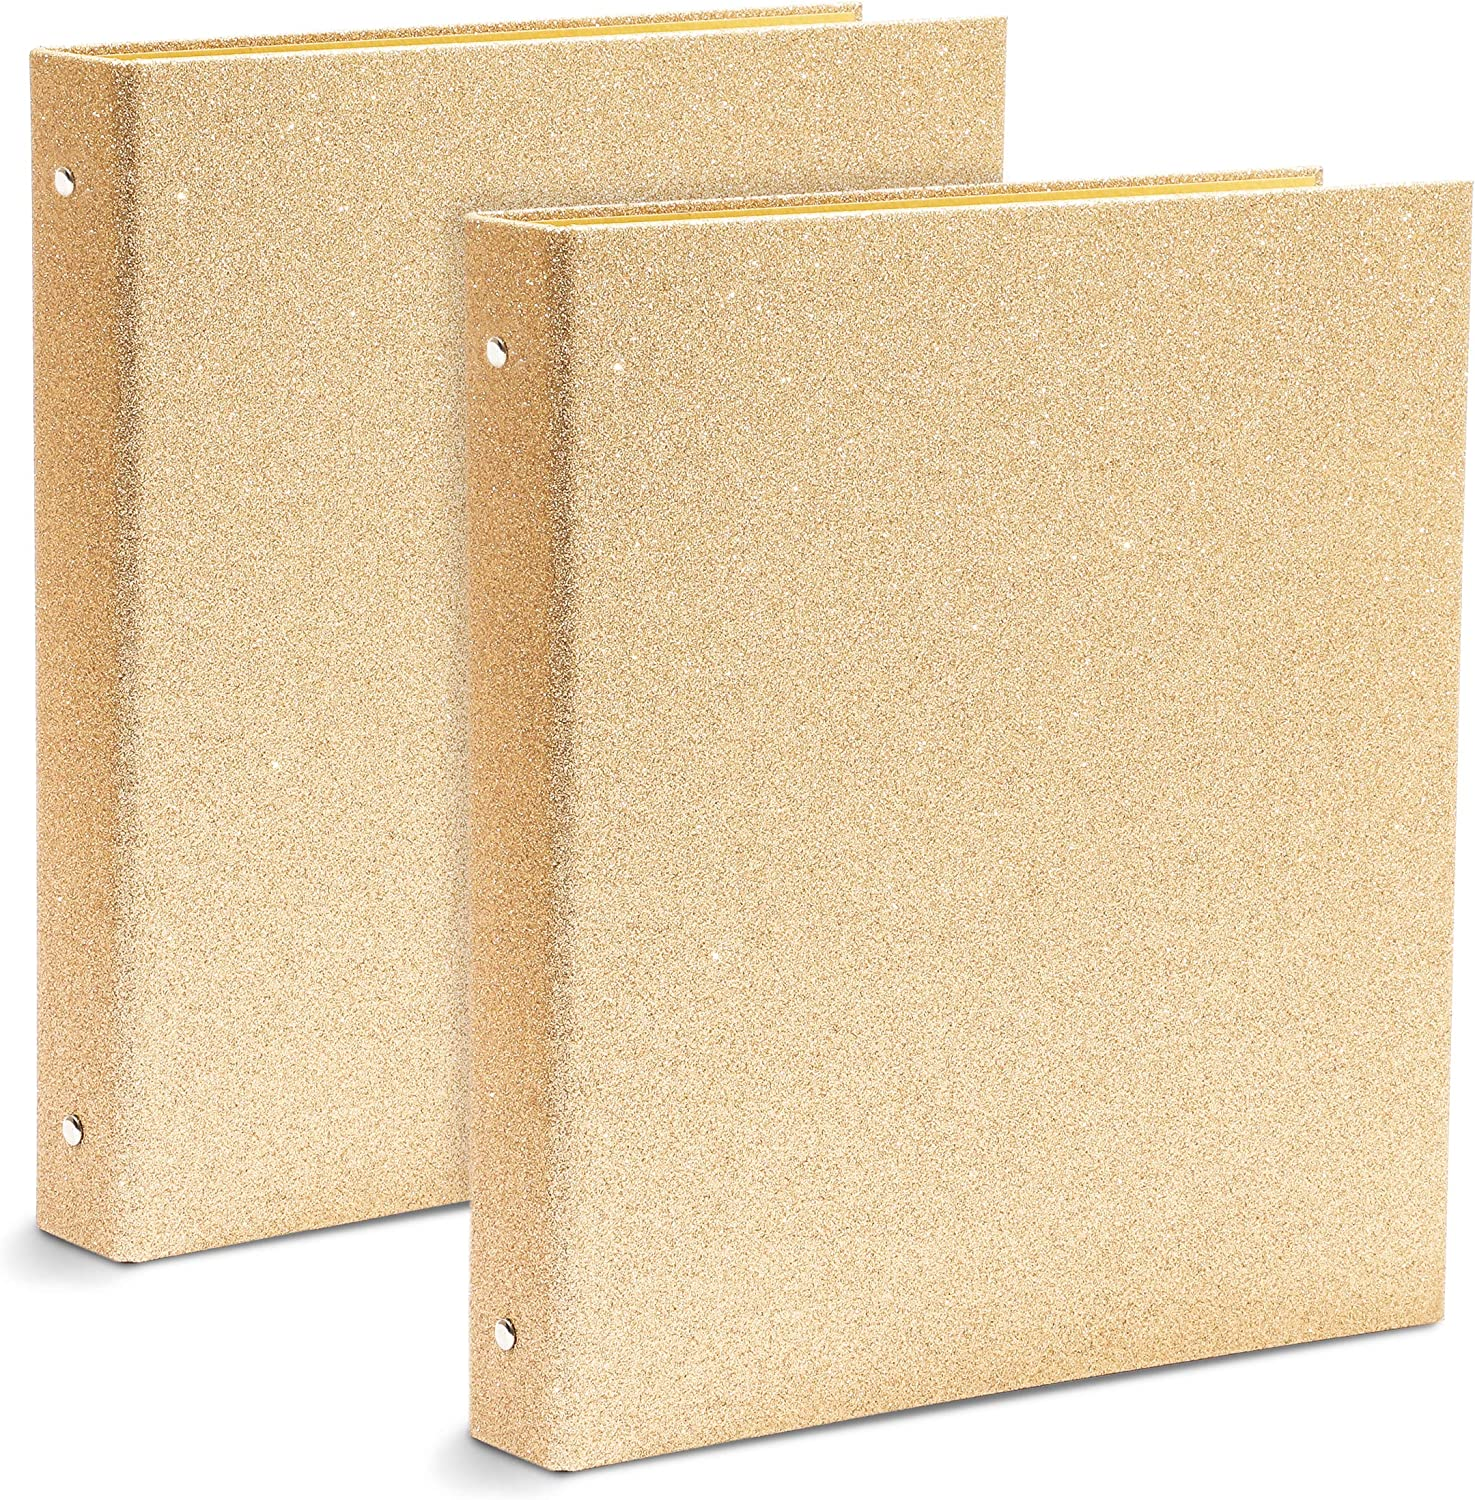 Glitter Gold 3-Ring Binder, Office Accessories (10.7 x 12 x 1.8 in, 2 Pack)